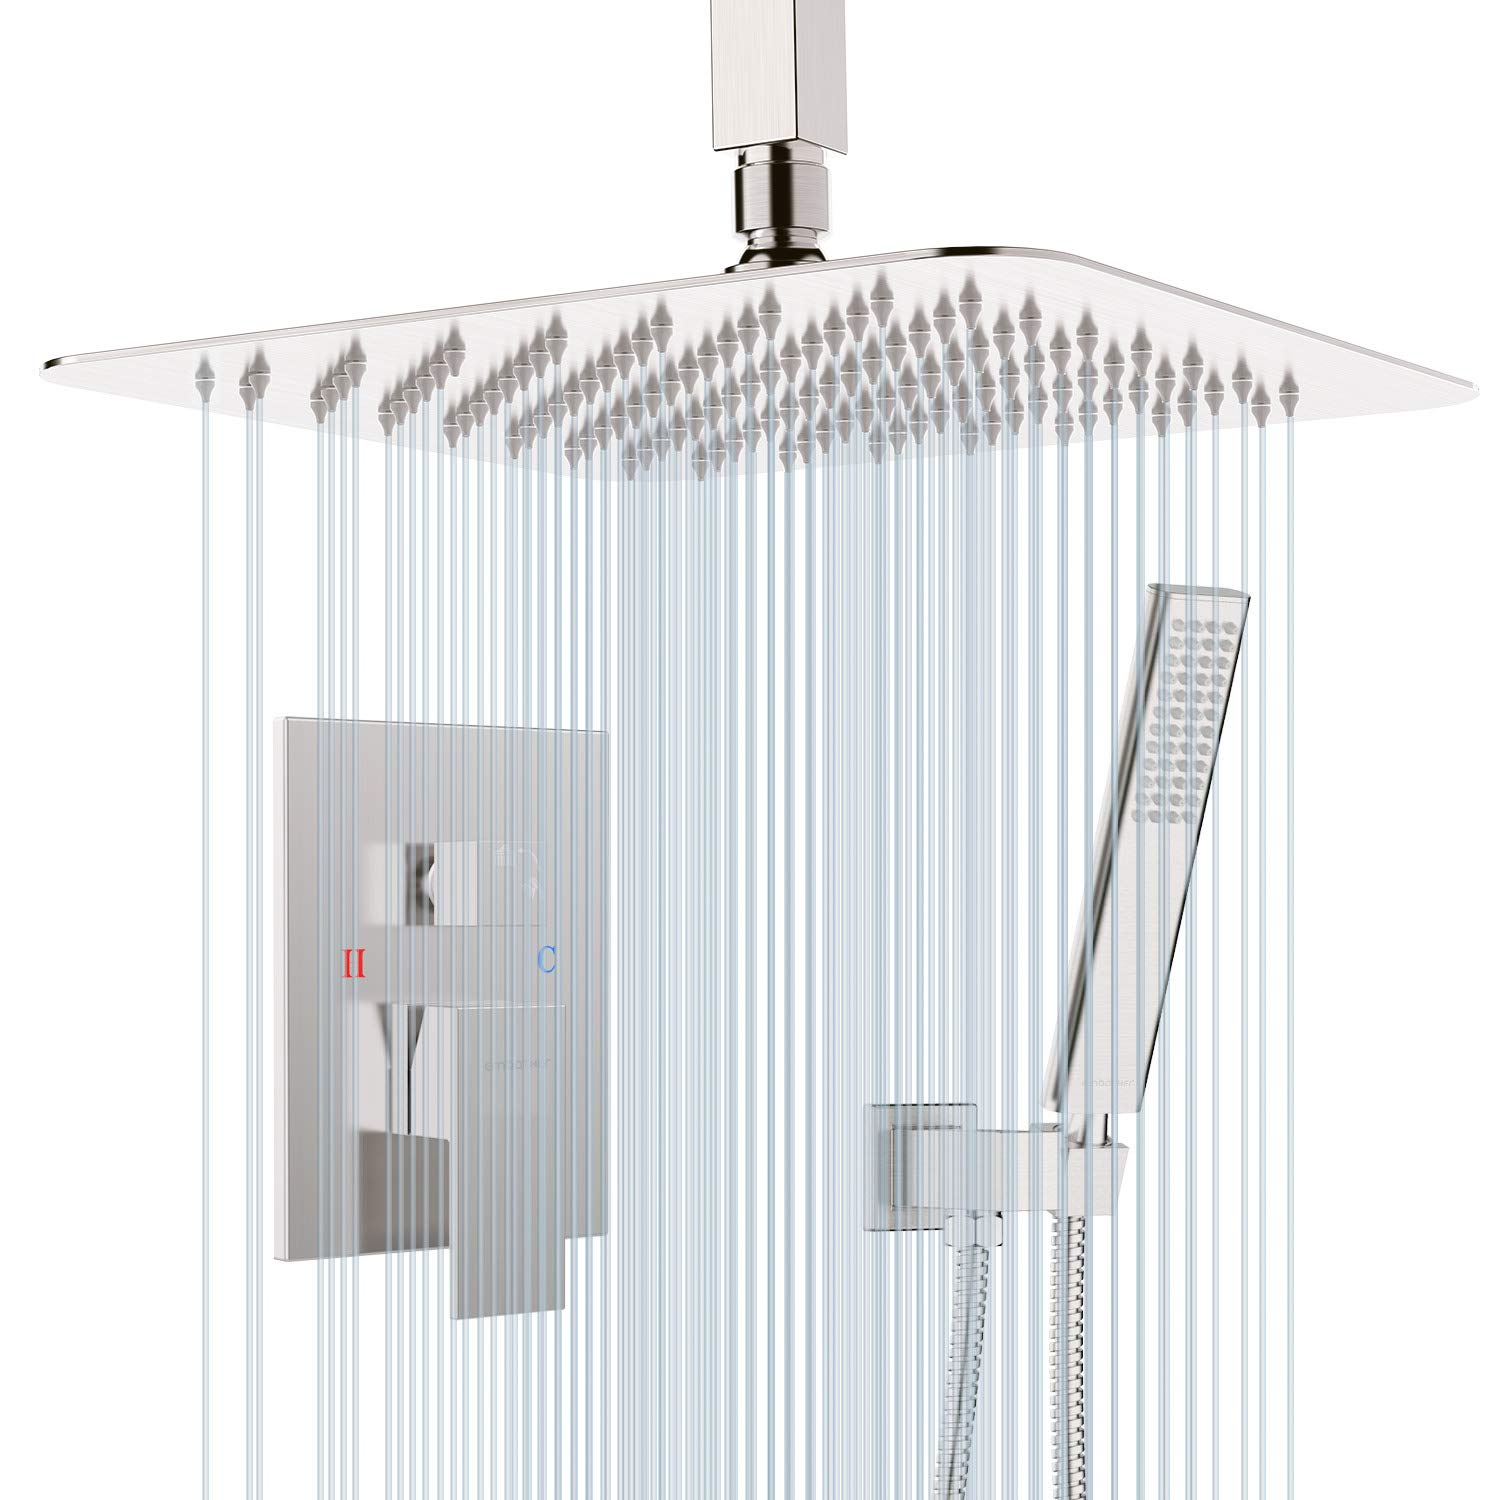 EMBATHER Shower System-Brushed Nickel Ceiling Shower Faucet Sets with 10 Inches Square Rain Shower Head and Handheld-Shower Combo Set for Bathroom-Easy Installation- Eco-Friendly(Valve included)